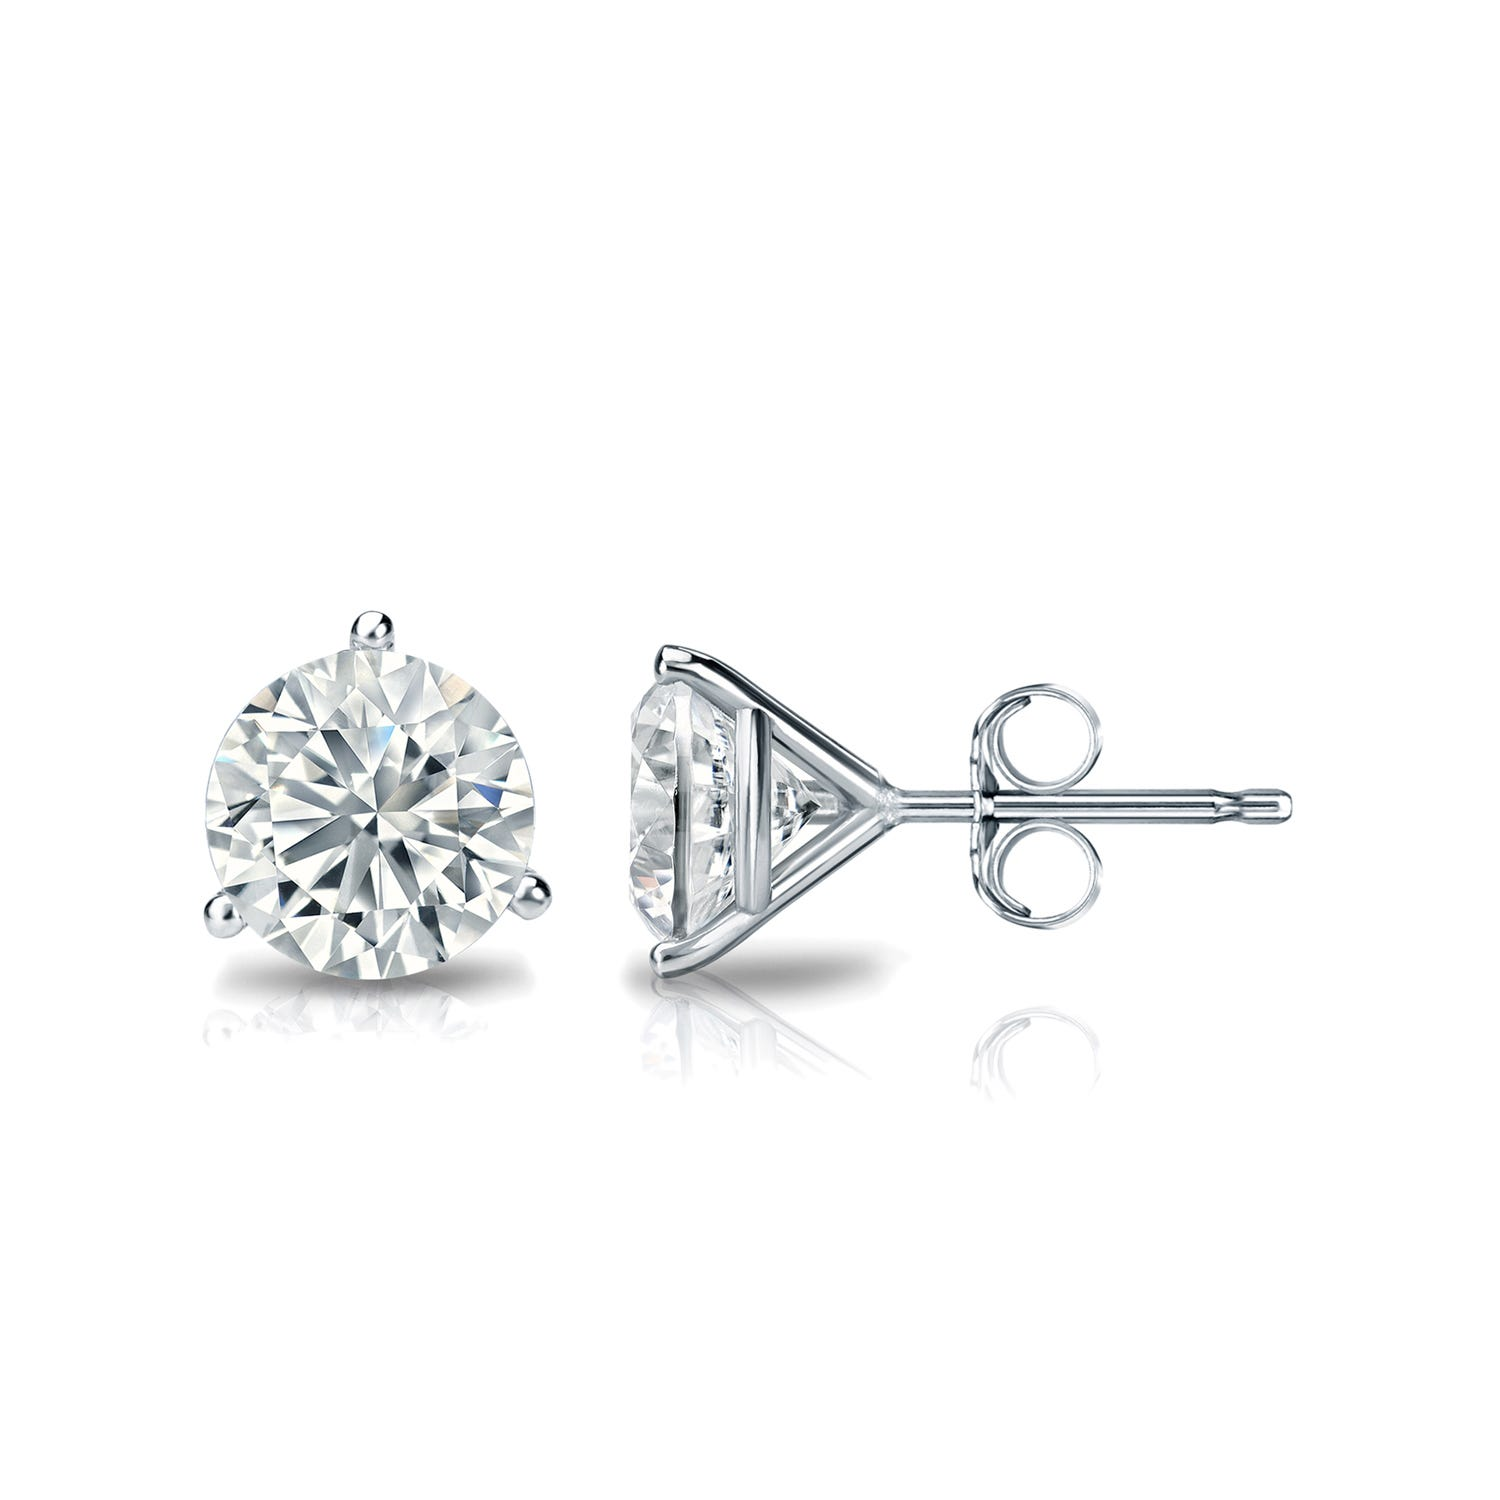 1 CTTW Round Diamond Solitaire Stud Earrings IJ I1 in 18K White Gold IGI Certified 3-Prong Setting